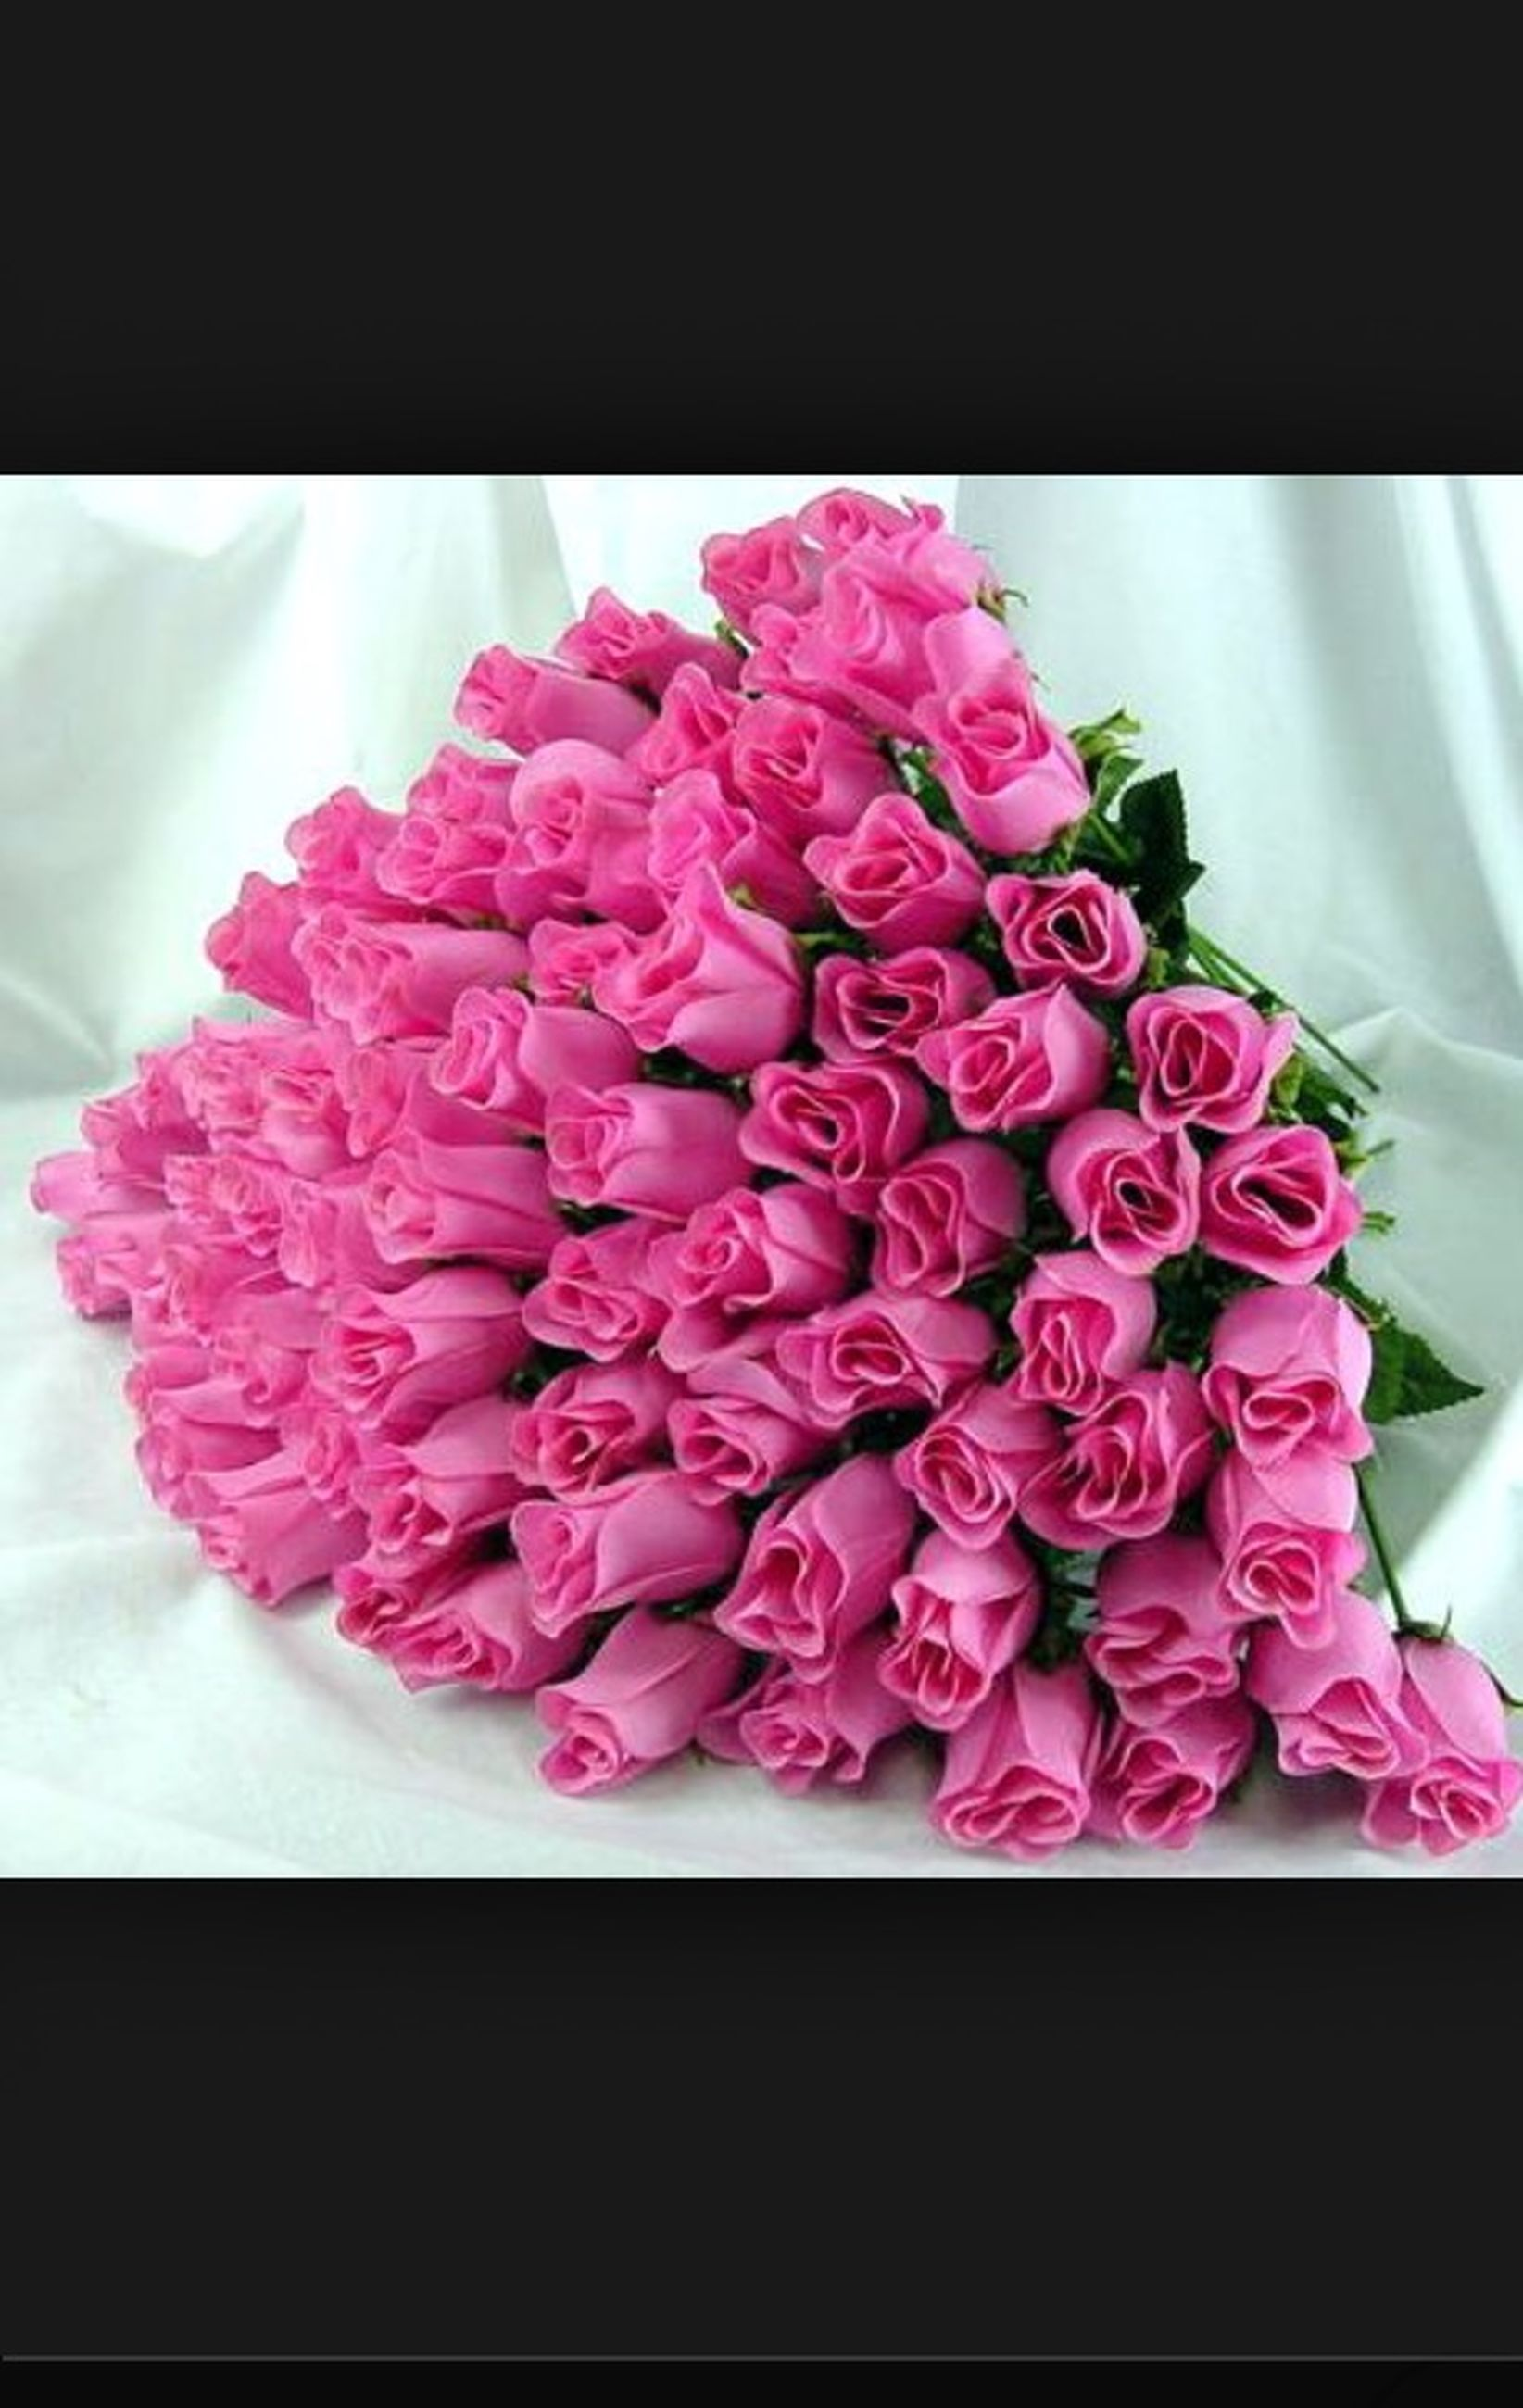 flower, transfer print, indoors, freshness, petal, auto post production filter, fragility, flower head, pink color, beauty in nature, close-up, nature, growth, high angle view, no people, blooming, bunch of flowers, vase, pink, blossom